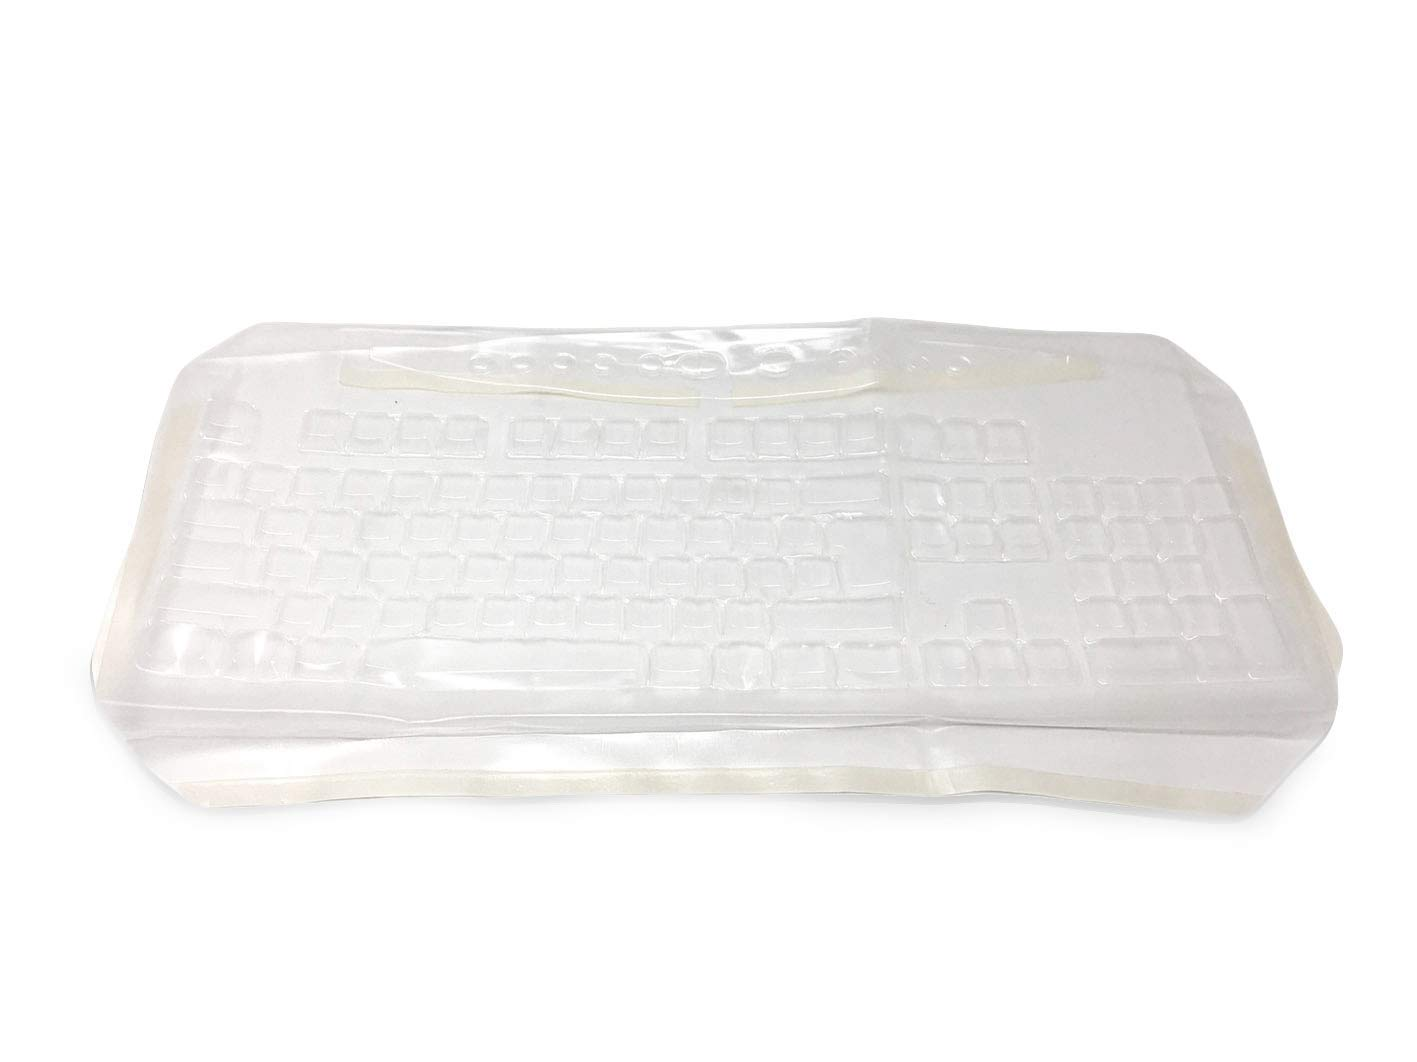 Keyboard Cover for Logitech 660 Keyboard, Keeps Out Dirt Dust Liquids and Contaminants - Keyboard not Included - Part# 155G107